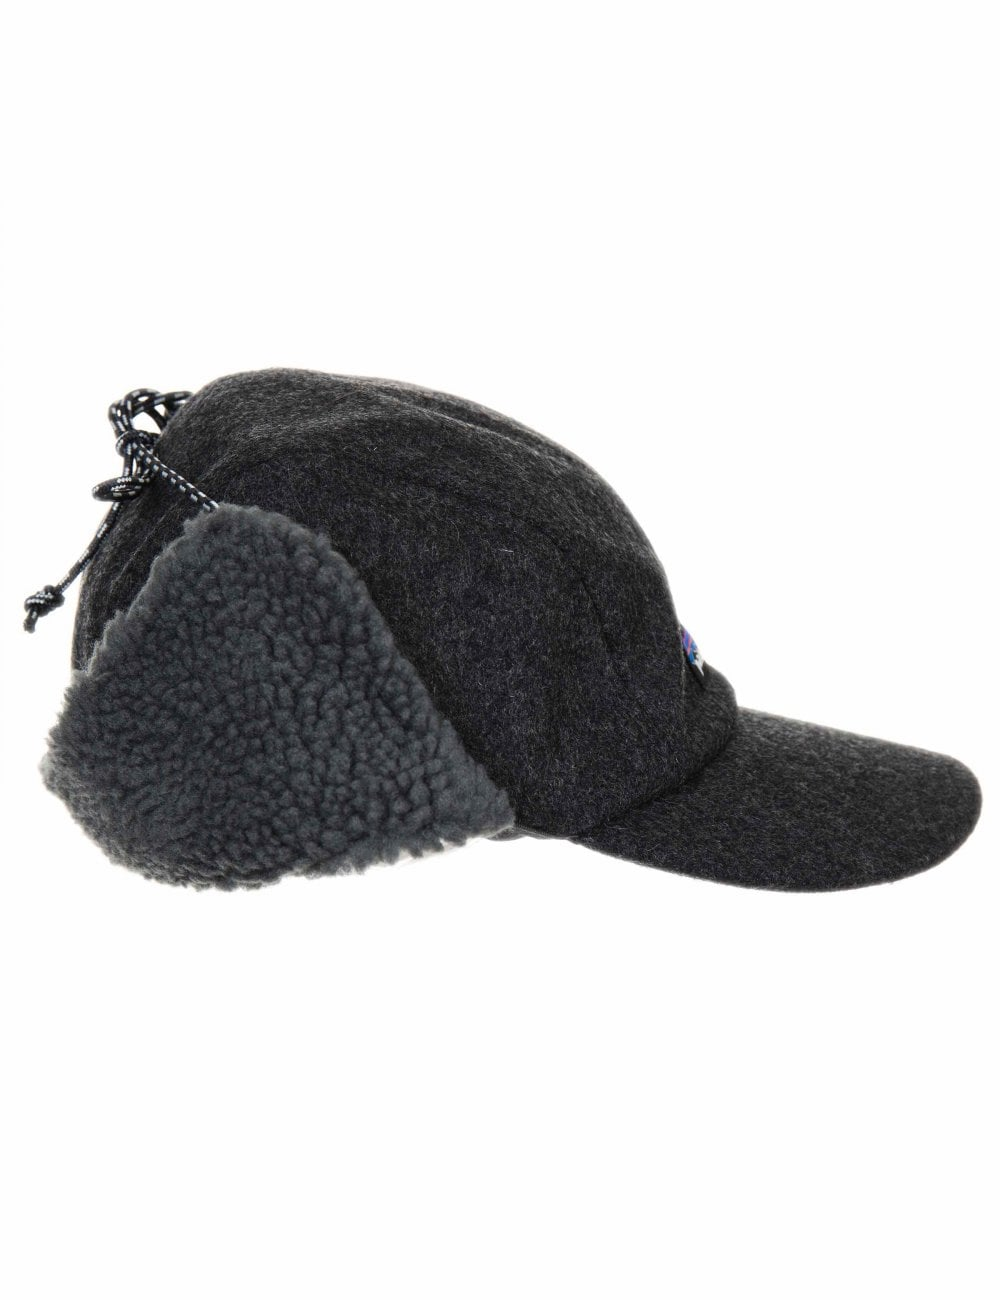 b251dc81ff34d Patagonia Recycled Wool Ear Flap Cap - Forge Grey - Accessories from ...